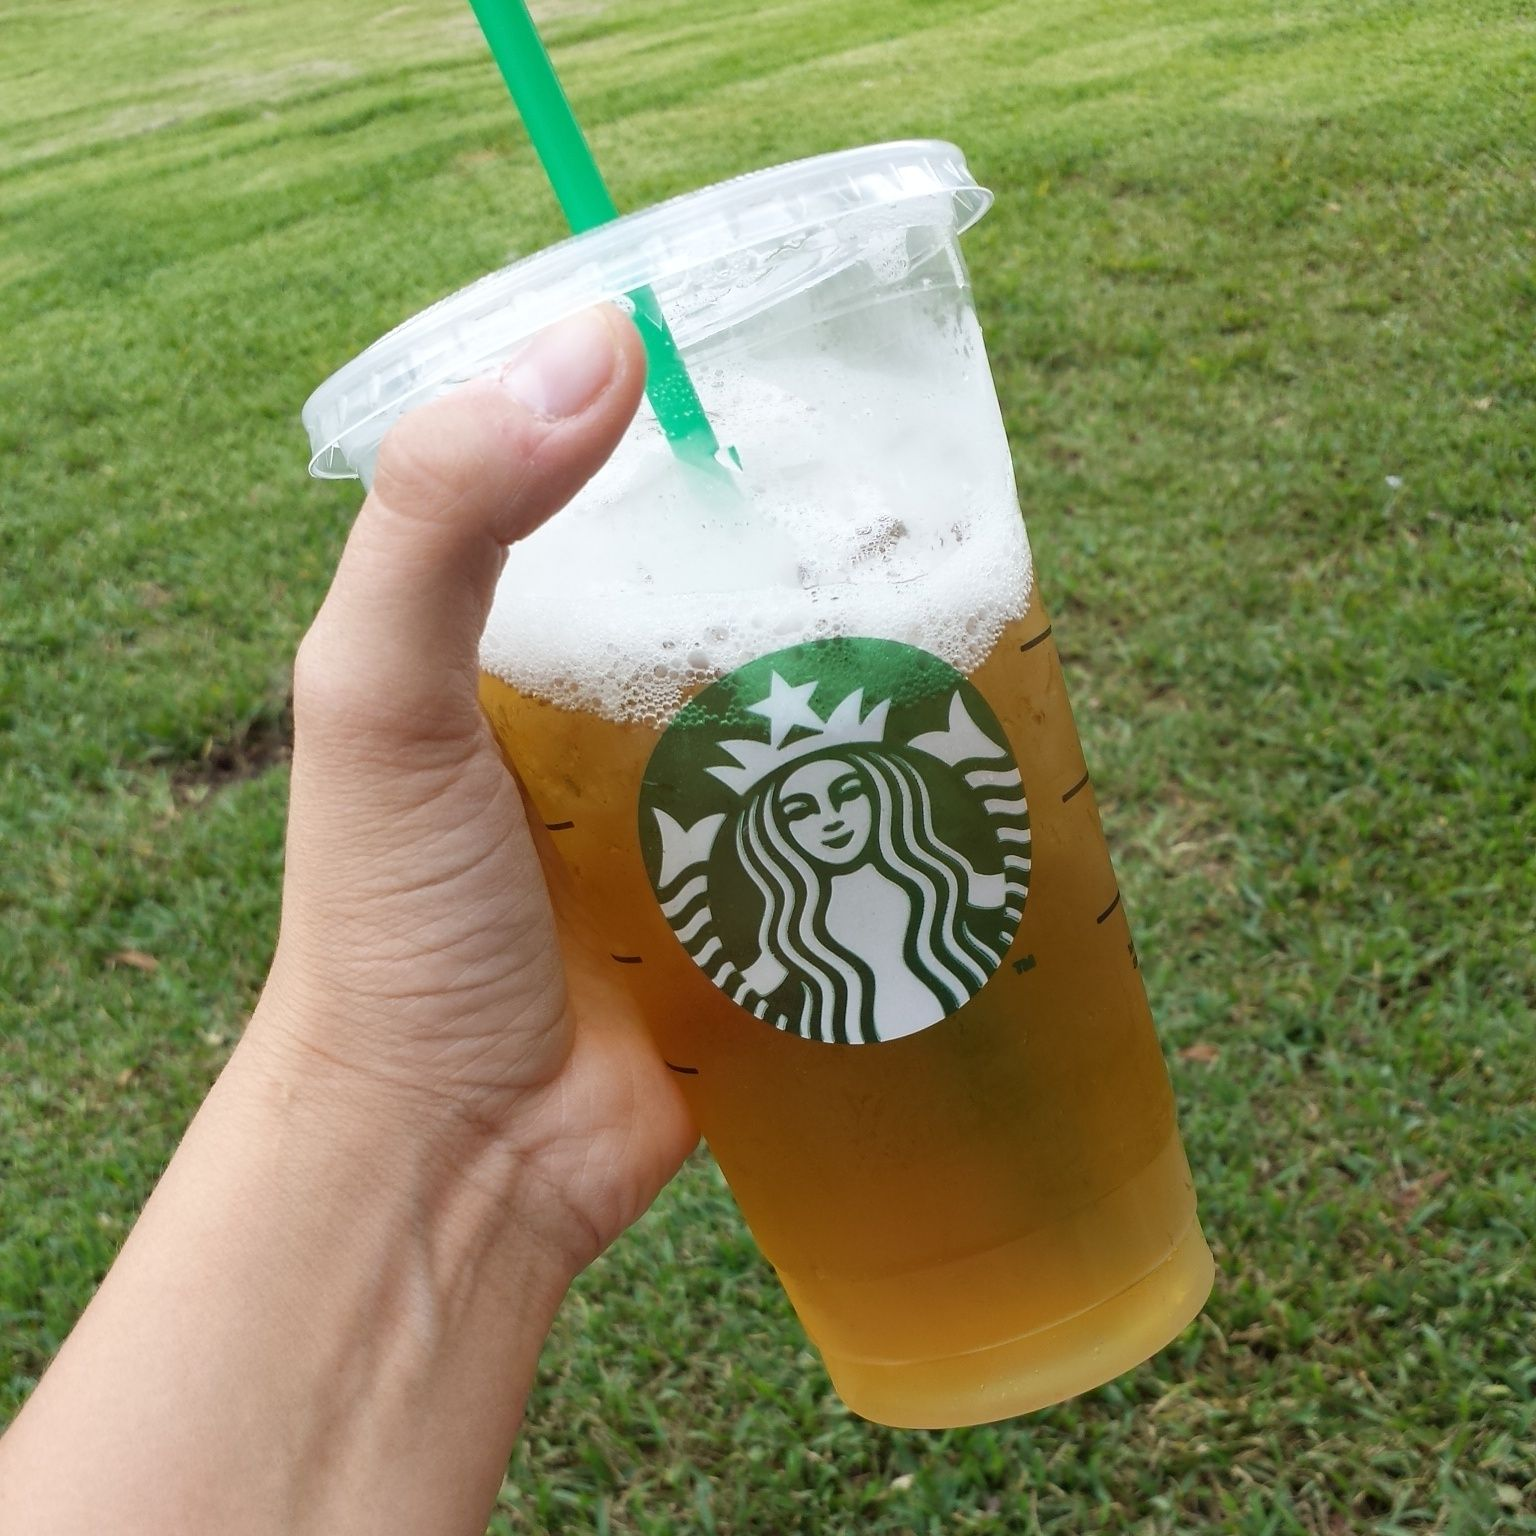 Zero Calorie Starbucks Drink! Healthy starbucks